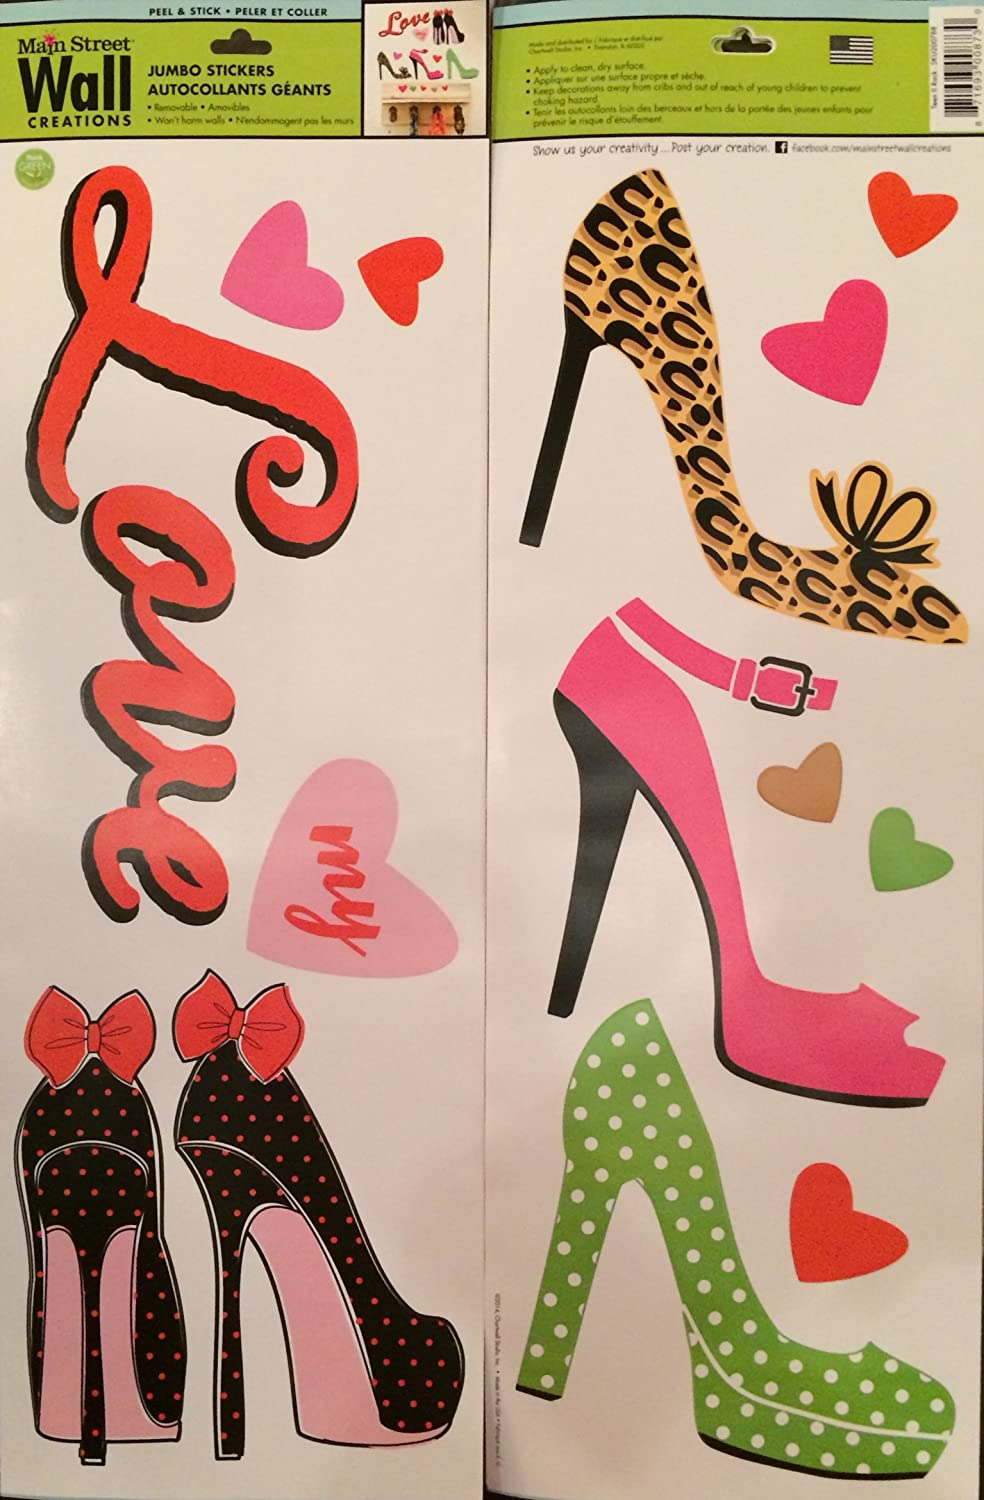 Amazon.com: 1 X High Heel Shoes U0026 Hearts Removable Wall Decals Stickers  Peel And Stick Wonu0027t Harm Walls: Home U0026 Kitchen Part 82